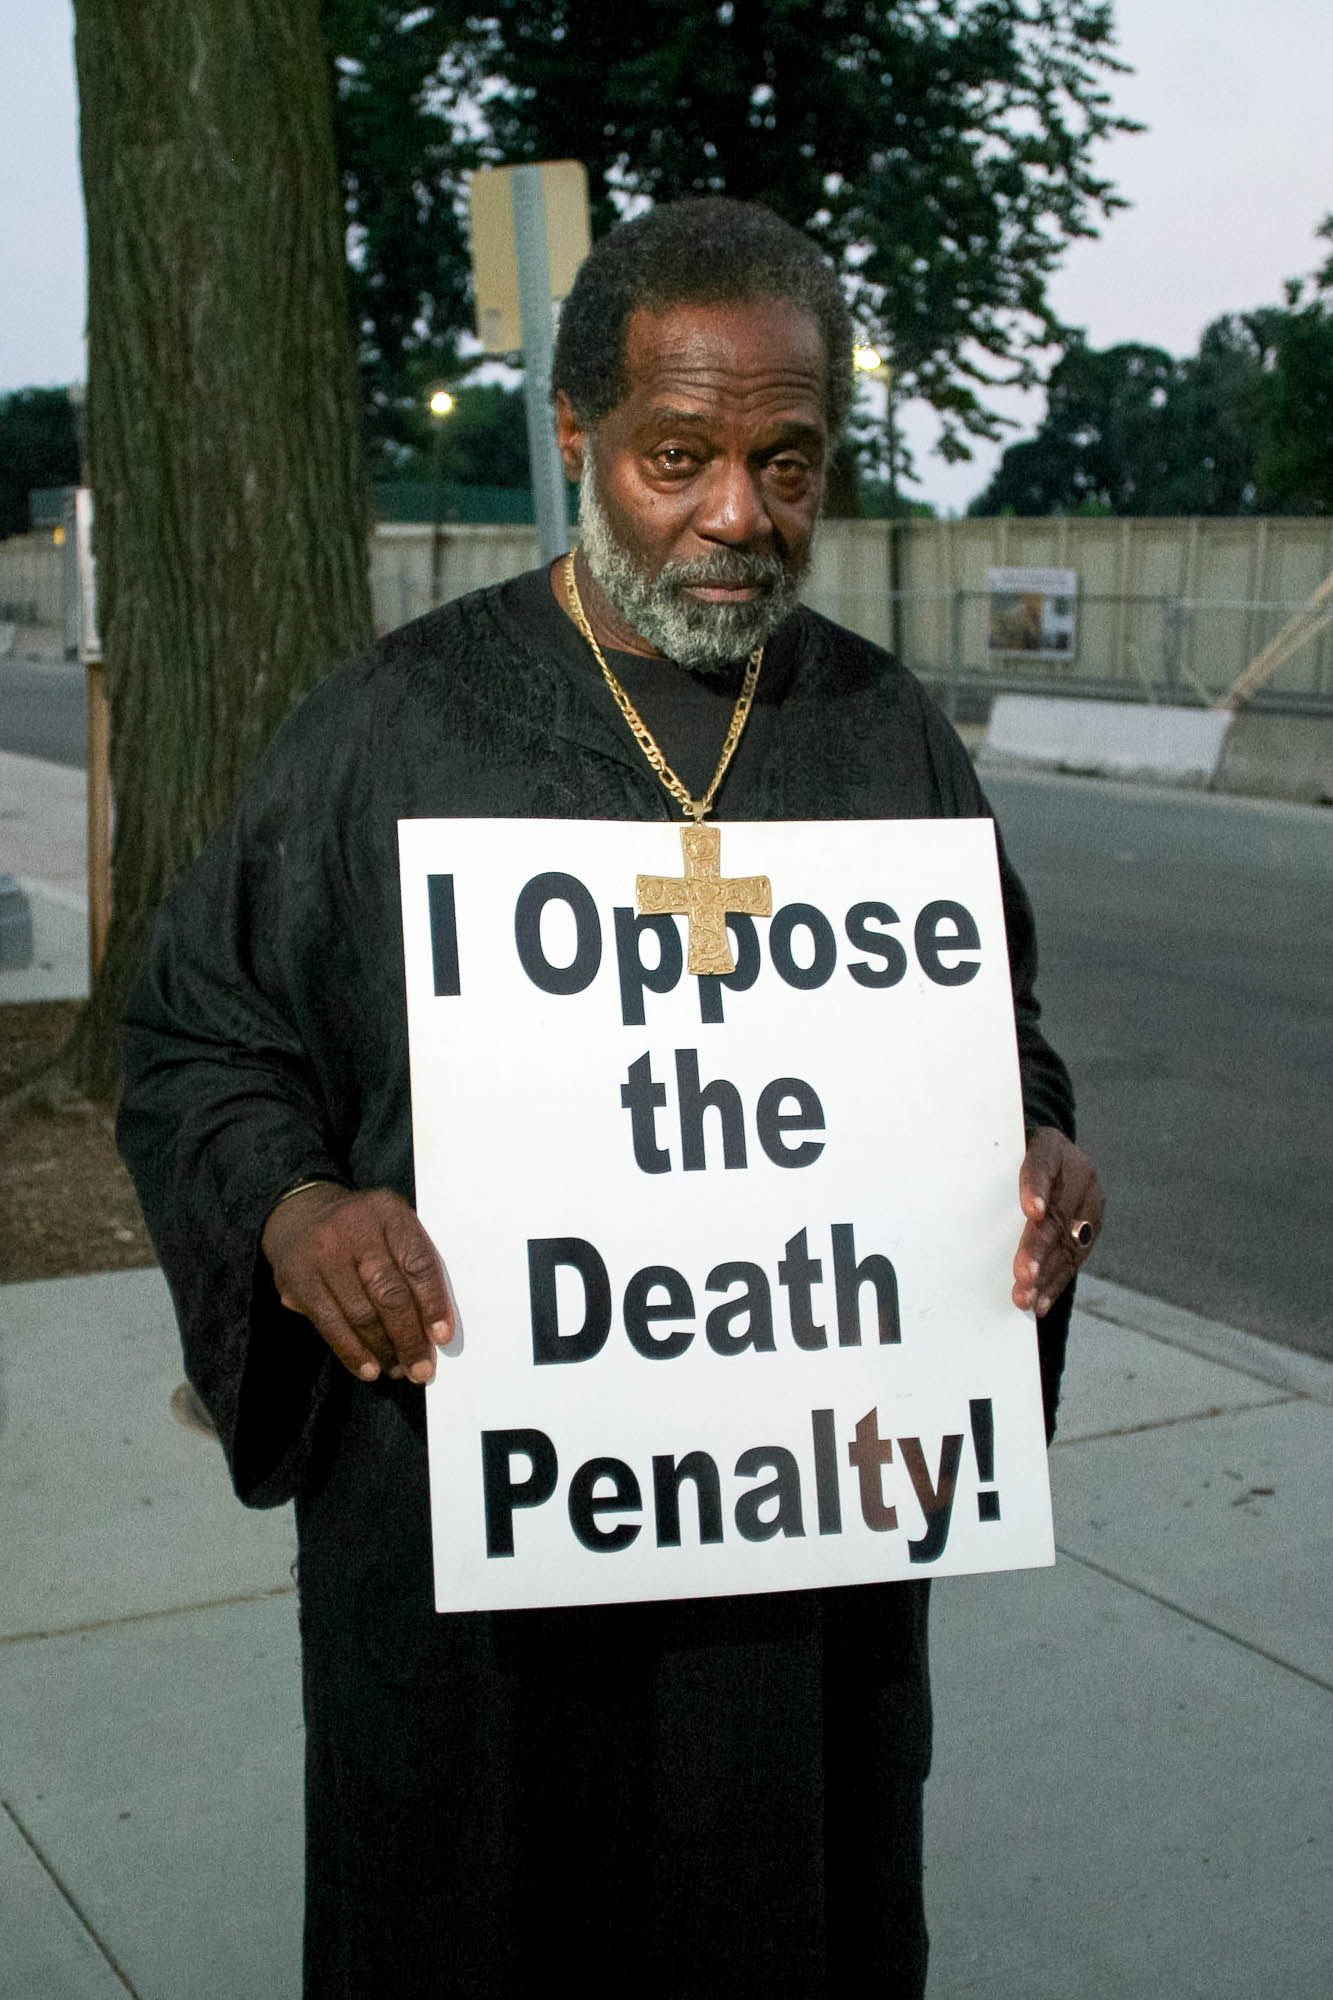 Darby Tillis - Illinois - death row innocent, wrongful conviction, exonerated